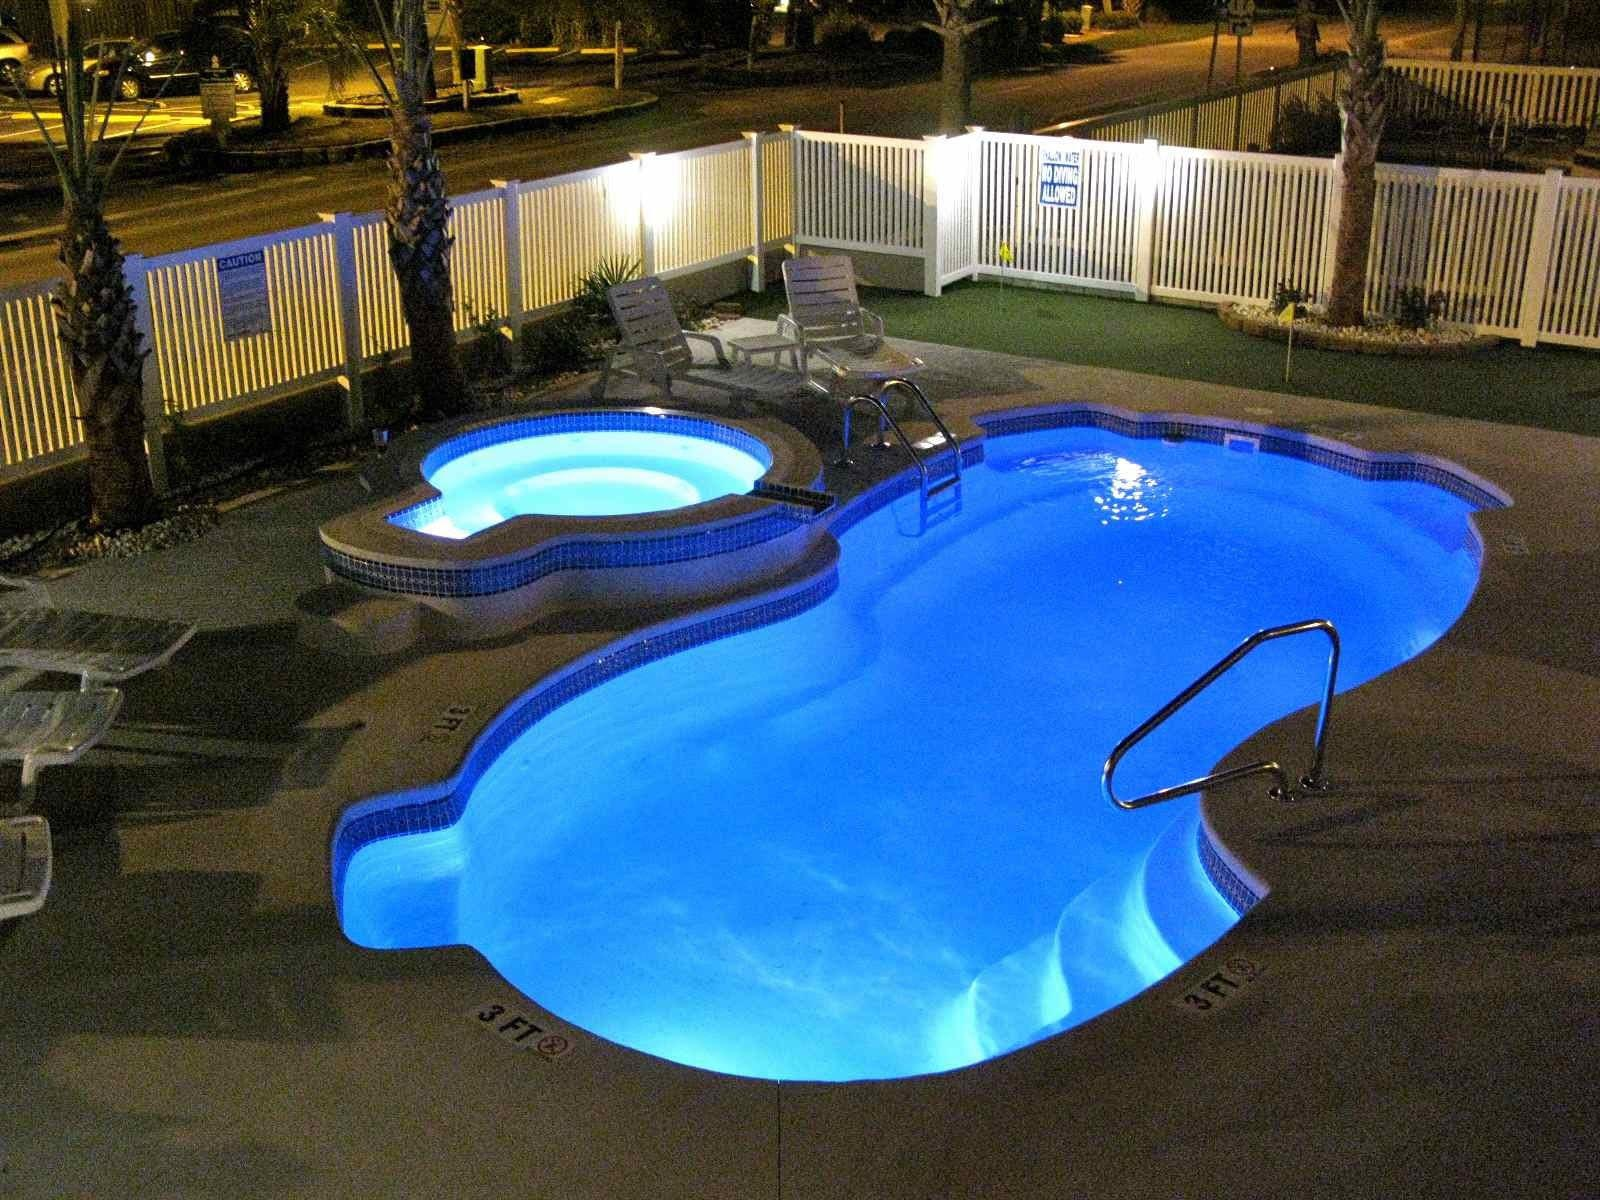 Inground pool deck which to choose backyard design ideas Above ground pool patio ideas